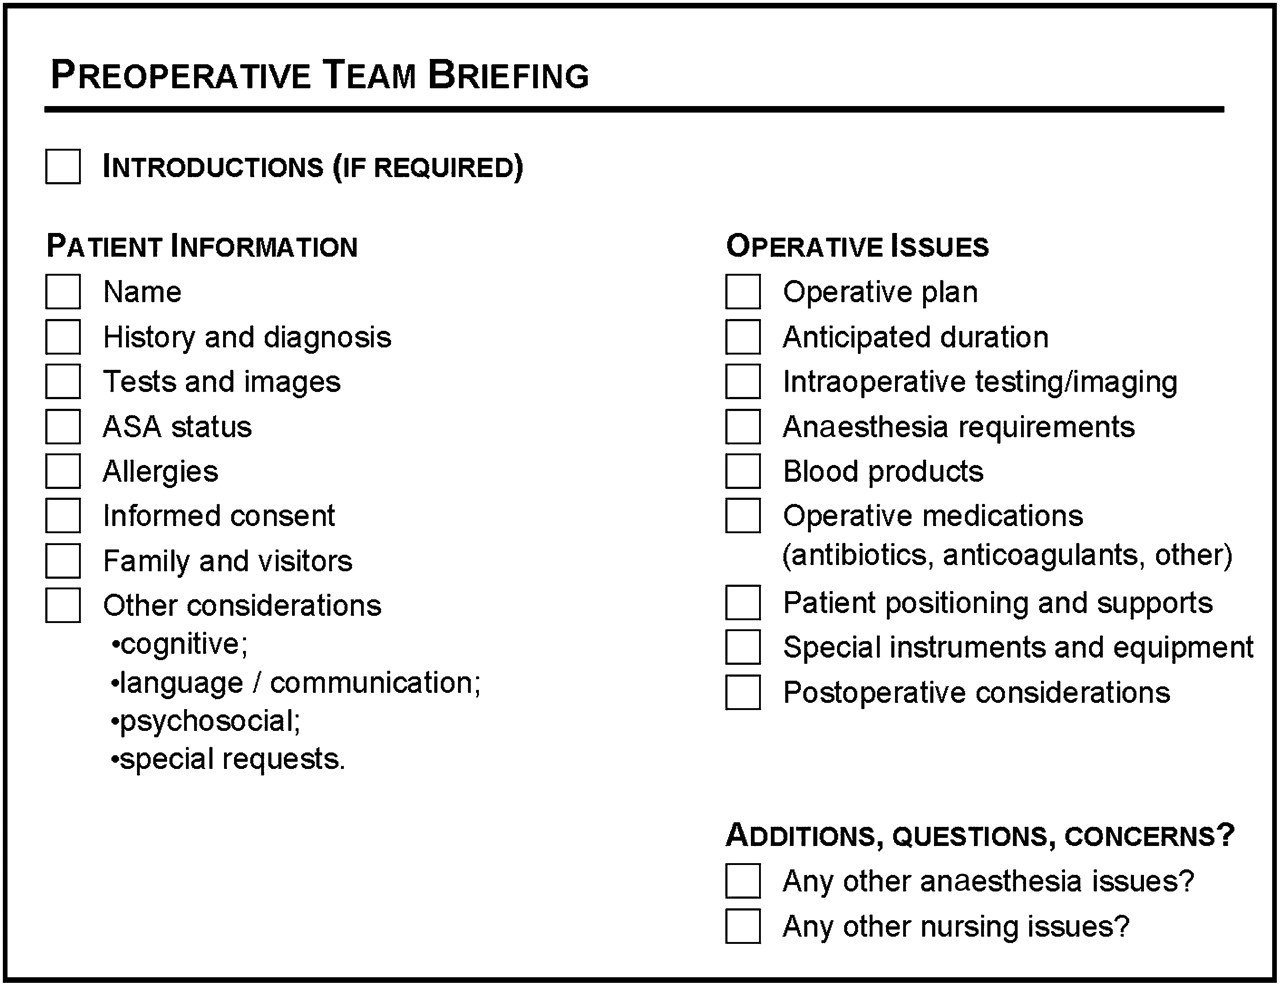 Evaluation Of A Preoperative Team Briefing A New Communication Routine Results In Improved